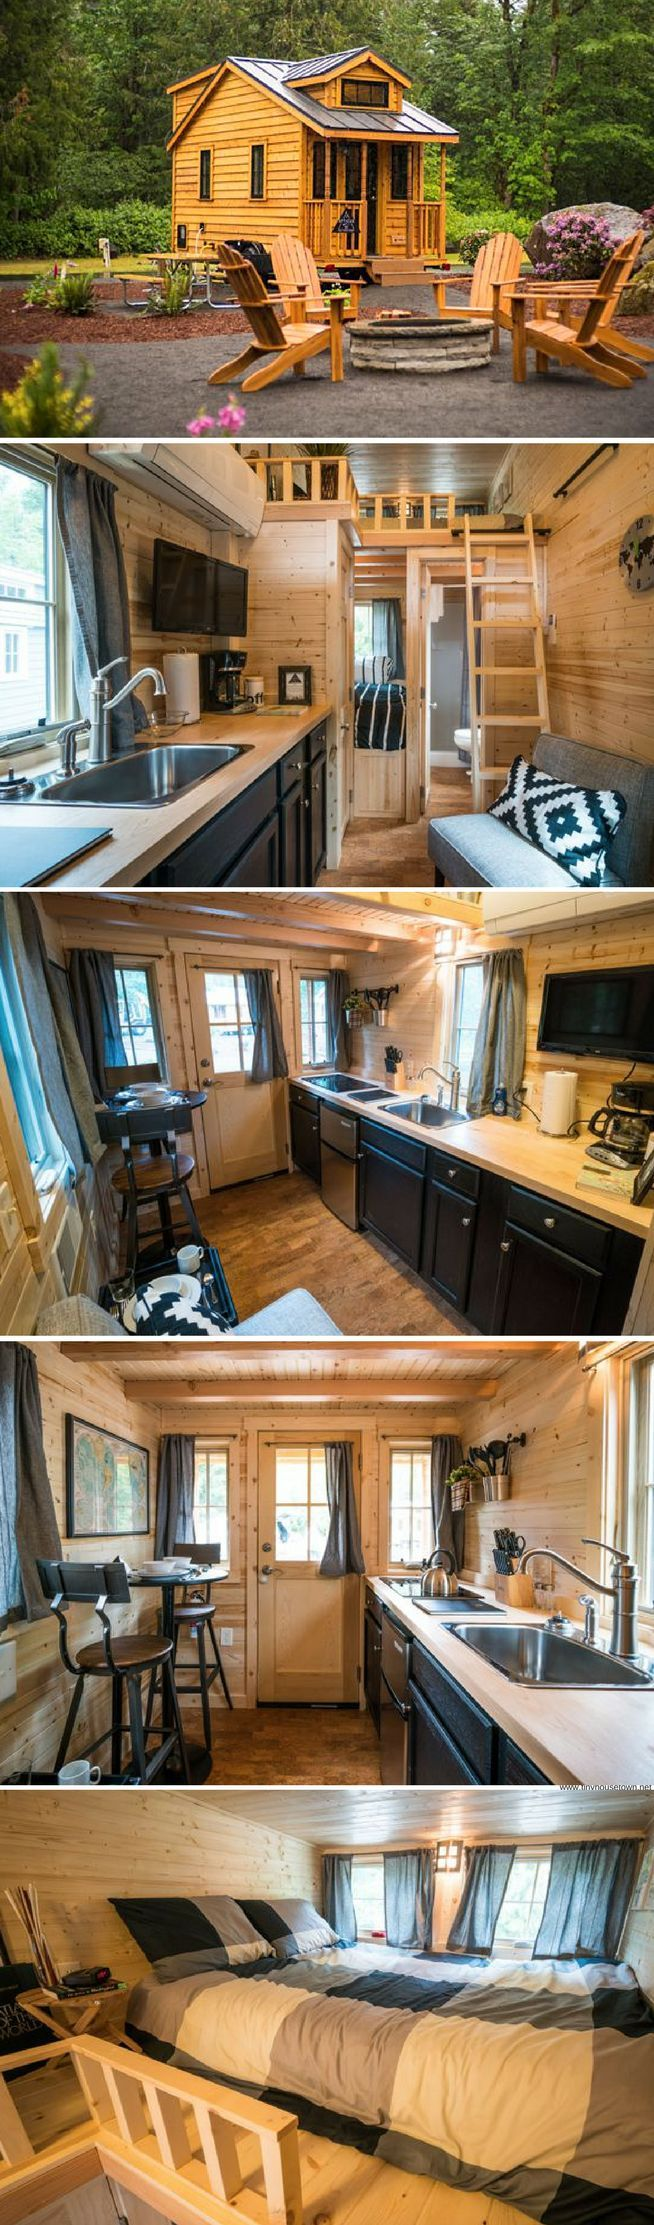 best 25 shed houses ideas on pinterest small log cabin plans atticus a 178 sq ft tiny house from the tumbleweed tiny house company available for rent at the mt guest houses